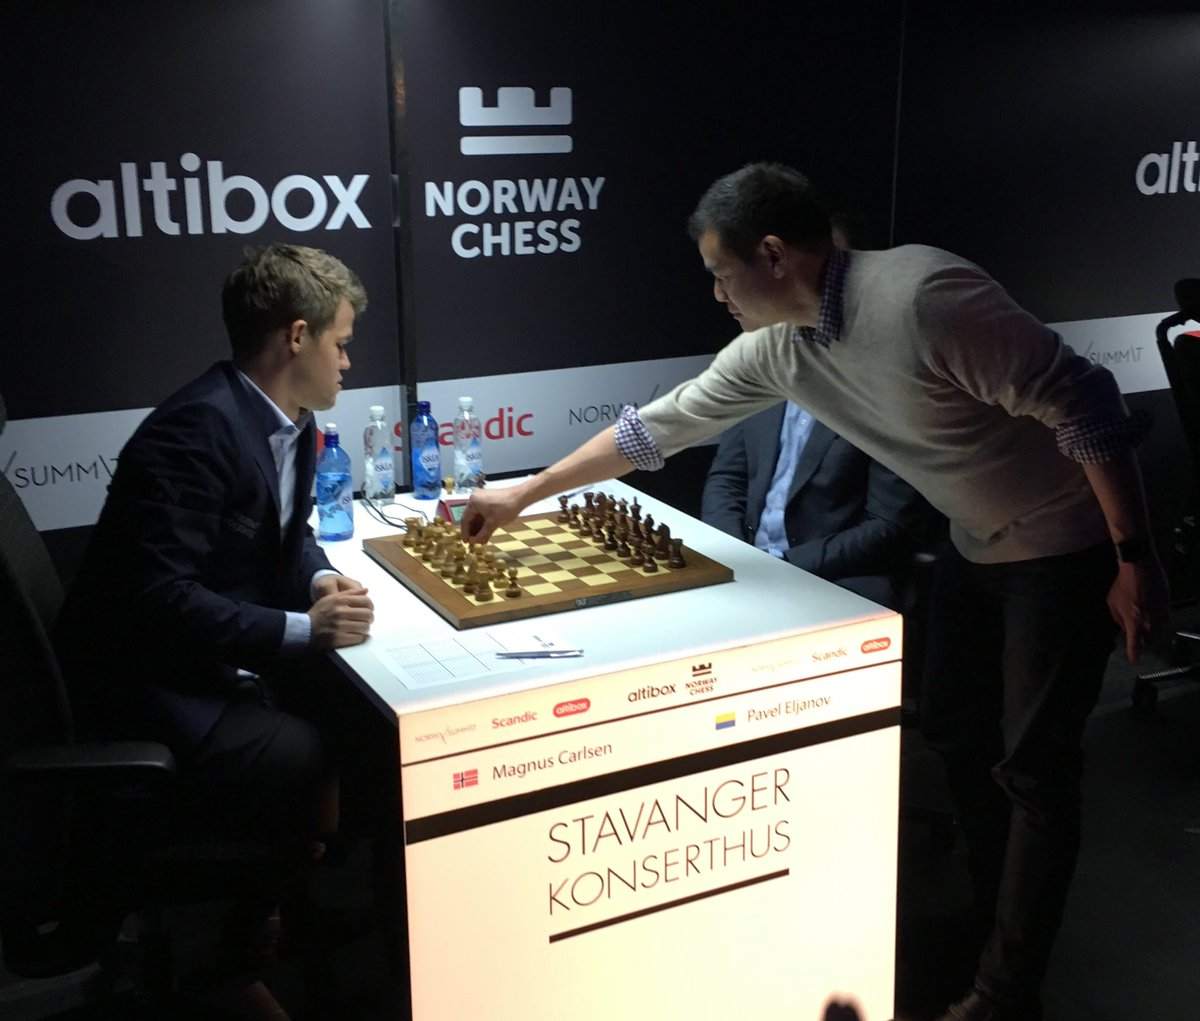 Opening move for @MagnusCarlsen in the @NorwayChess finals! https://t.co/P9hHpqaejo